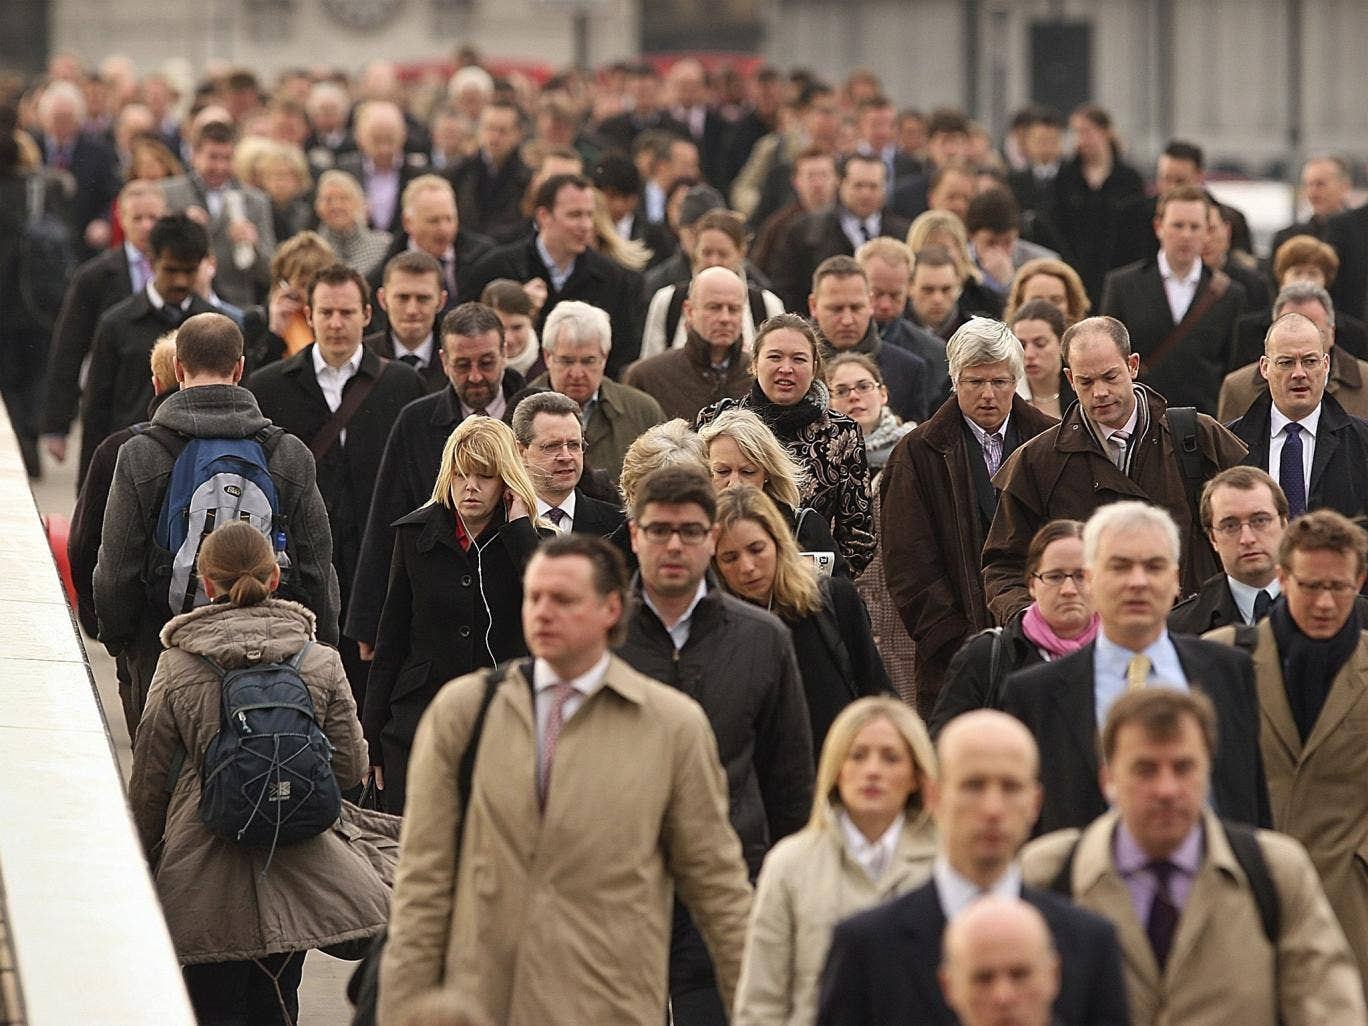 Back to the grind: Britons work on average 43 hours a week